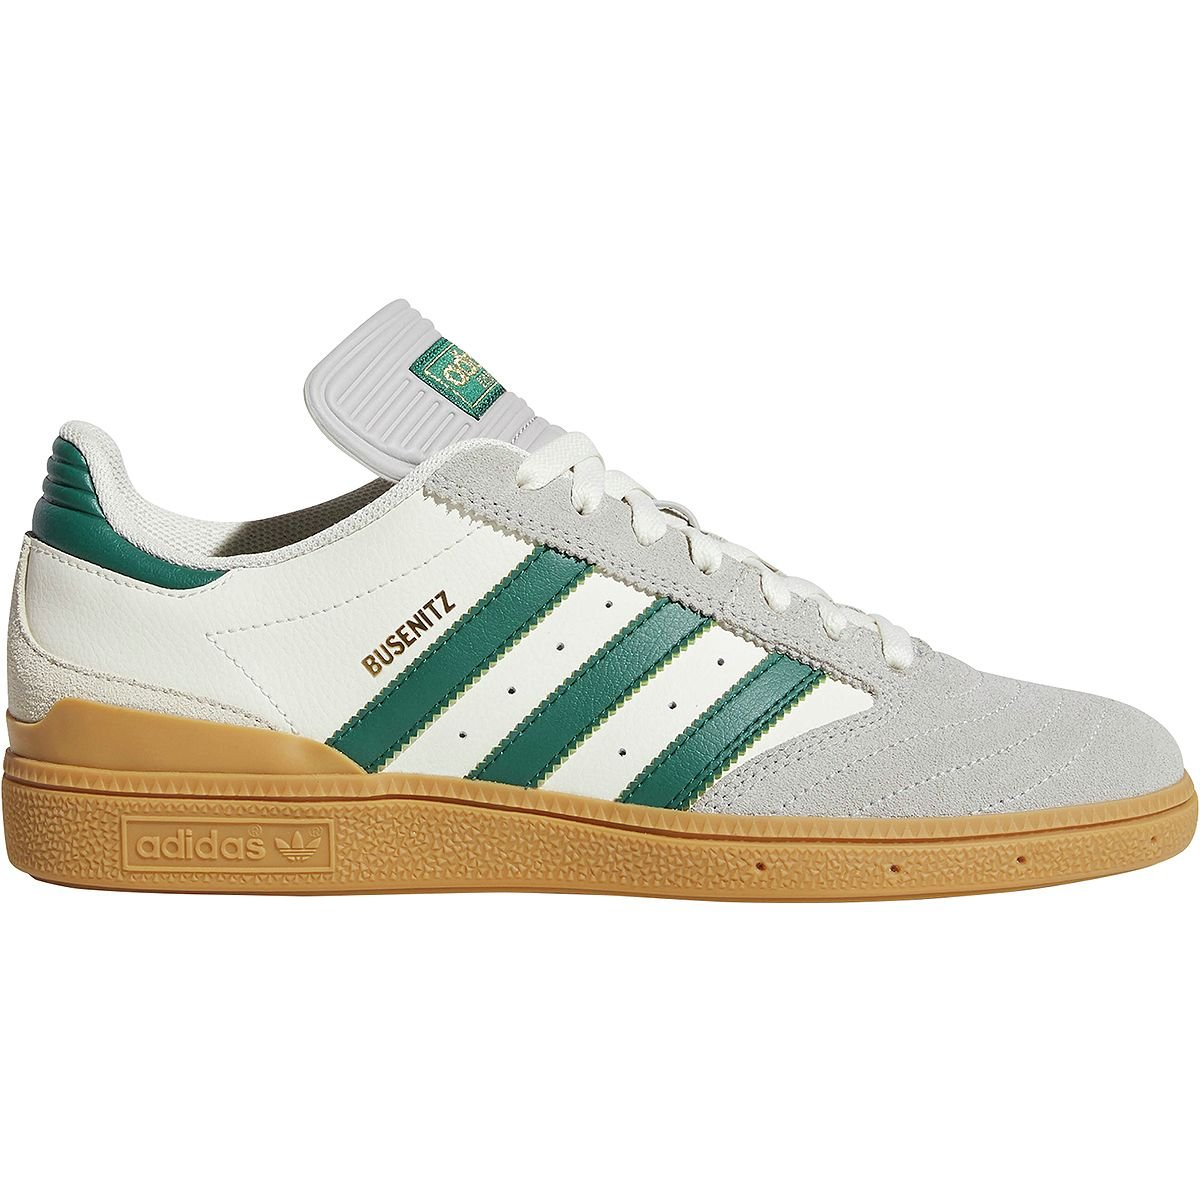 adidas Originals Men's Busenitz Sneaker 8.5 D(M) US|Grey/Collegiate Green/Gum